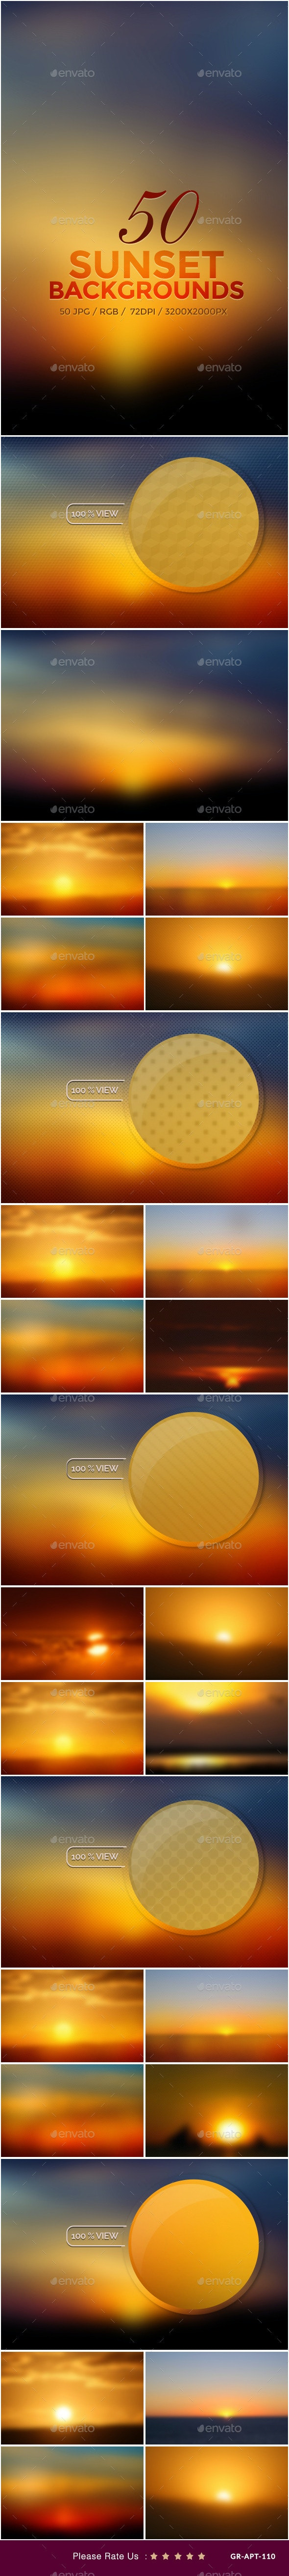 50 Sunset Backgrounds - Backgrounds Graphics